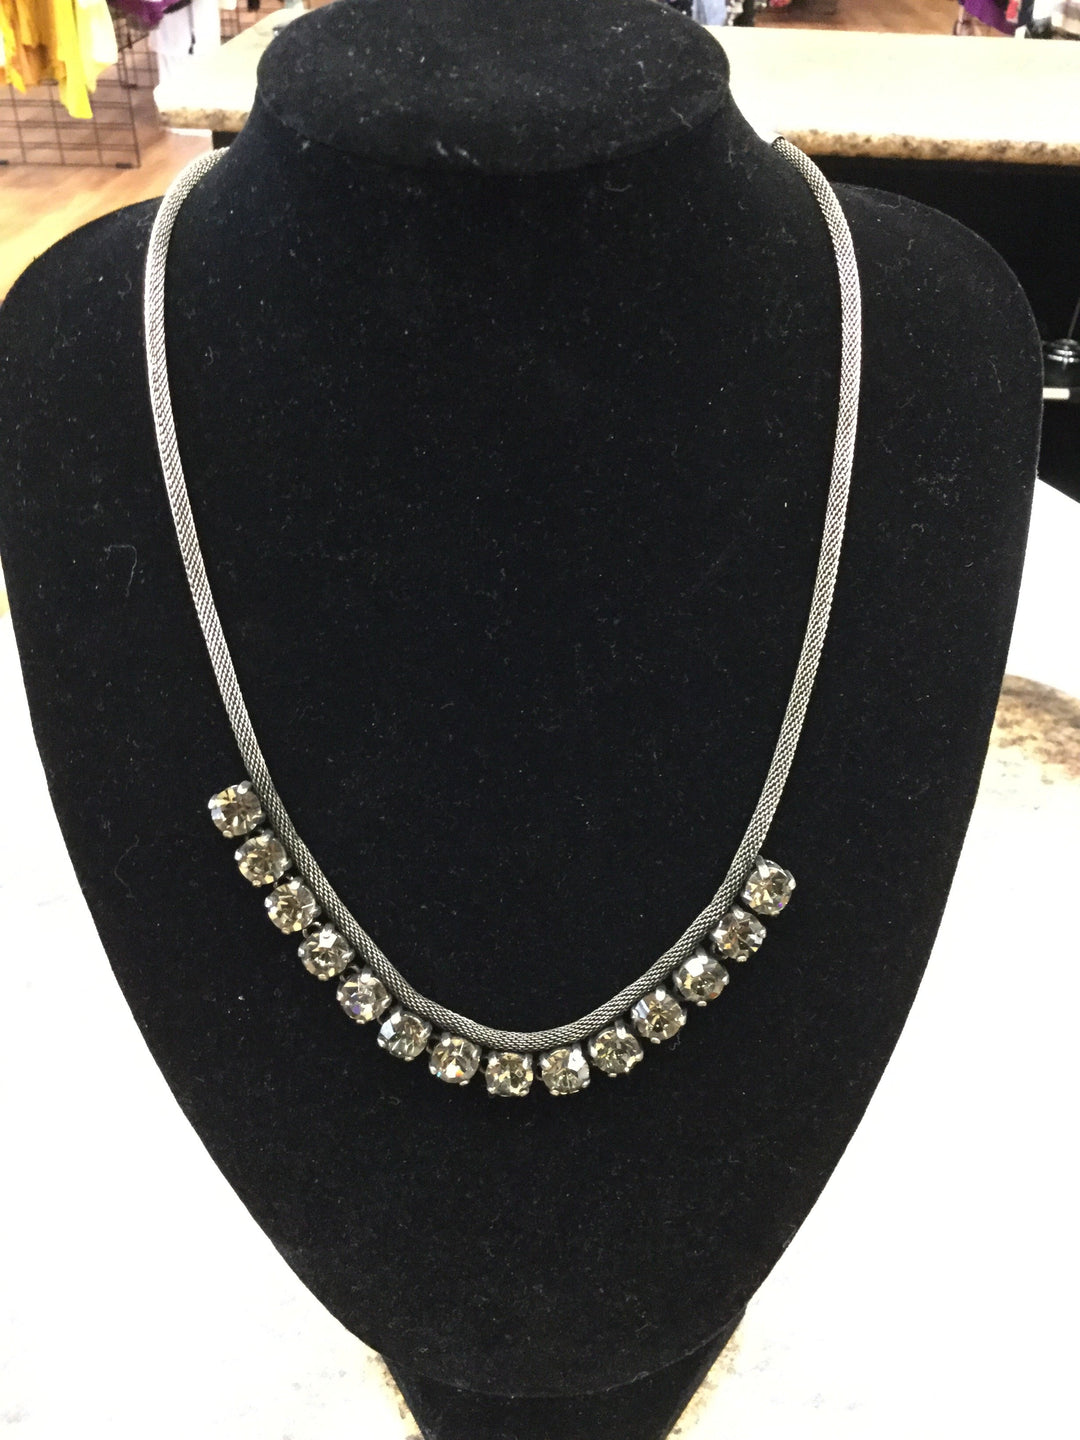 Primary Photo - brand: j crew , style: necklace , color: diamond , sku: 129-2252-11060